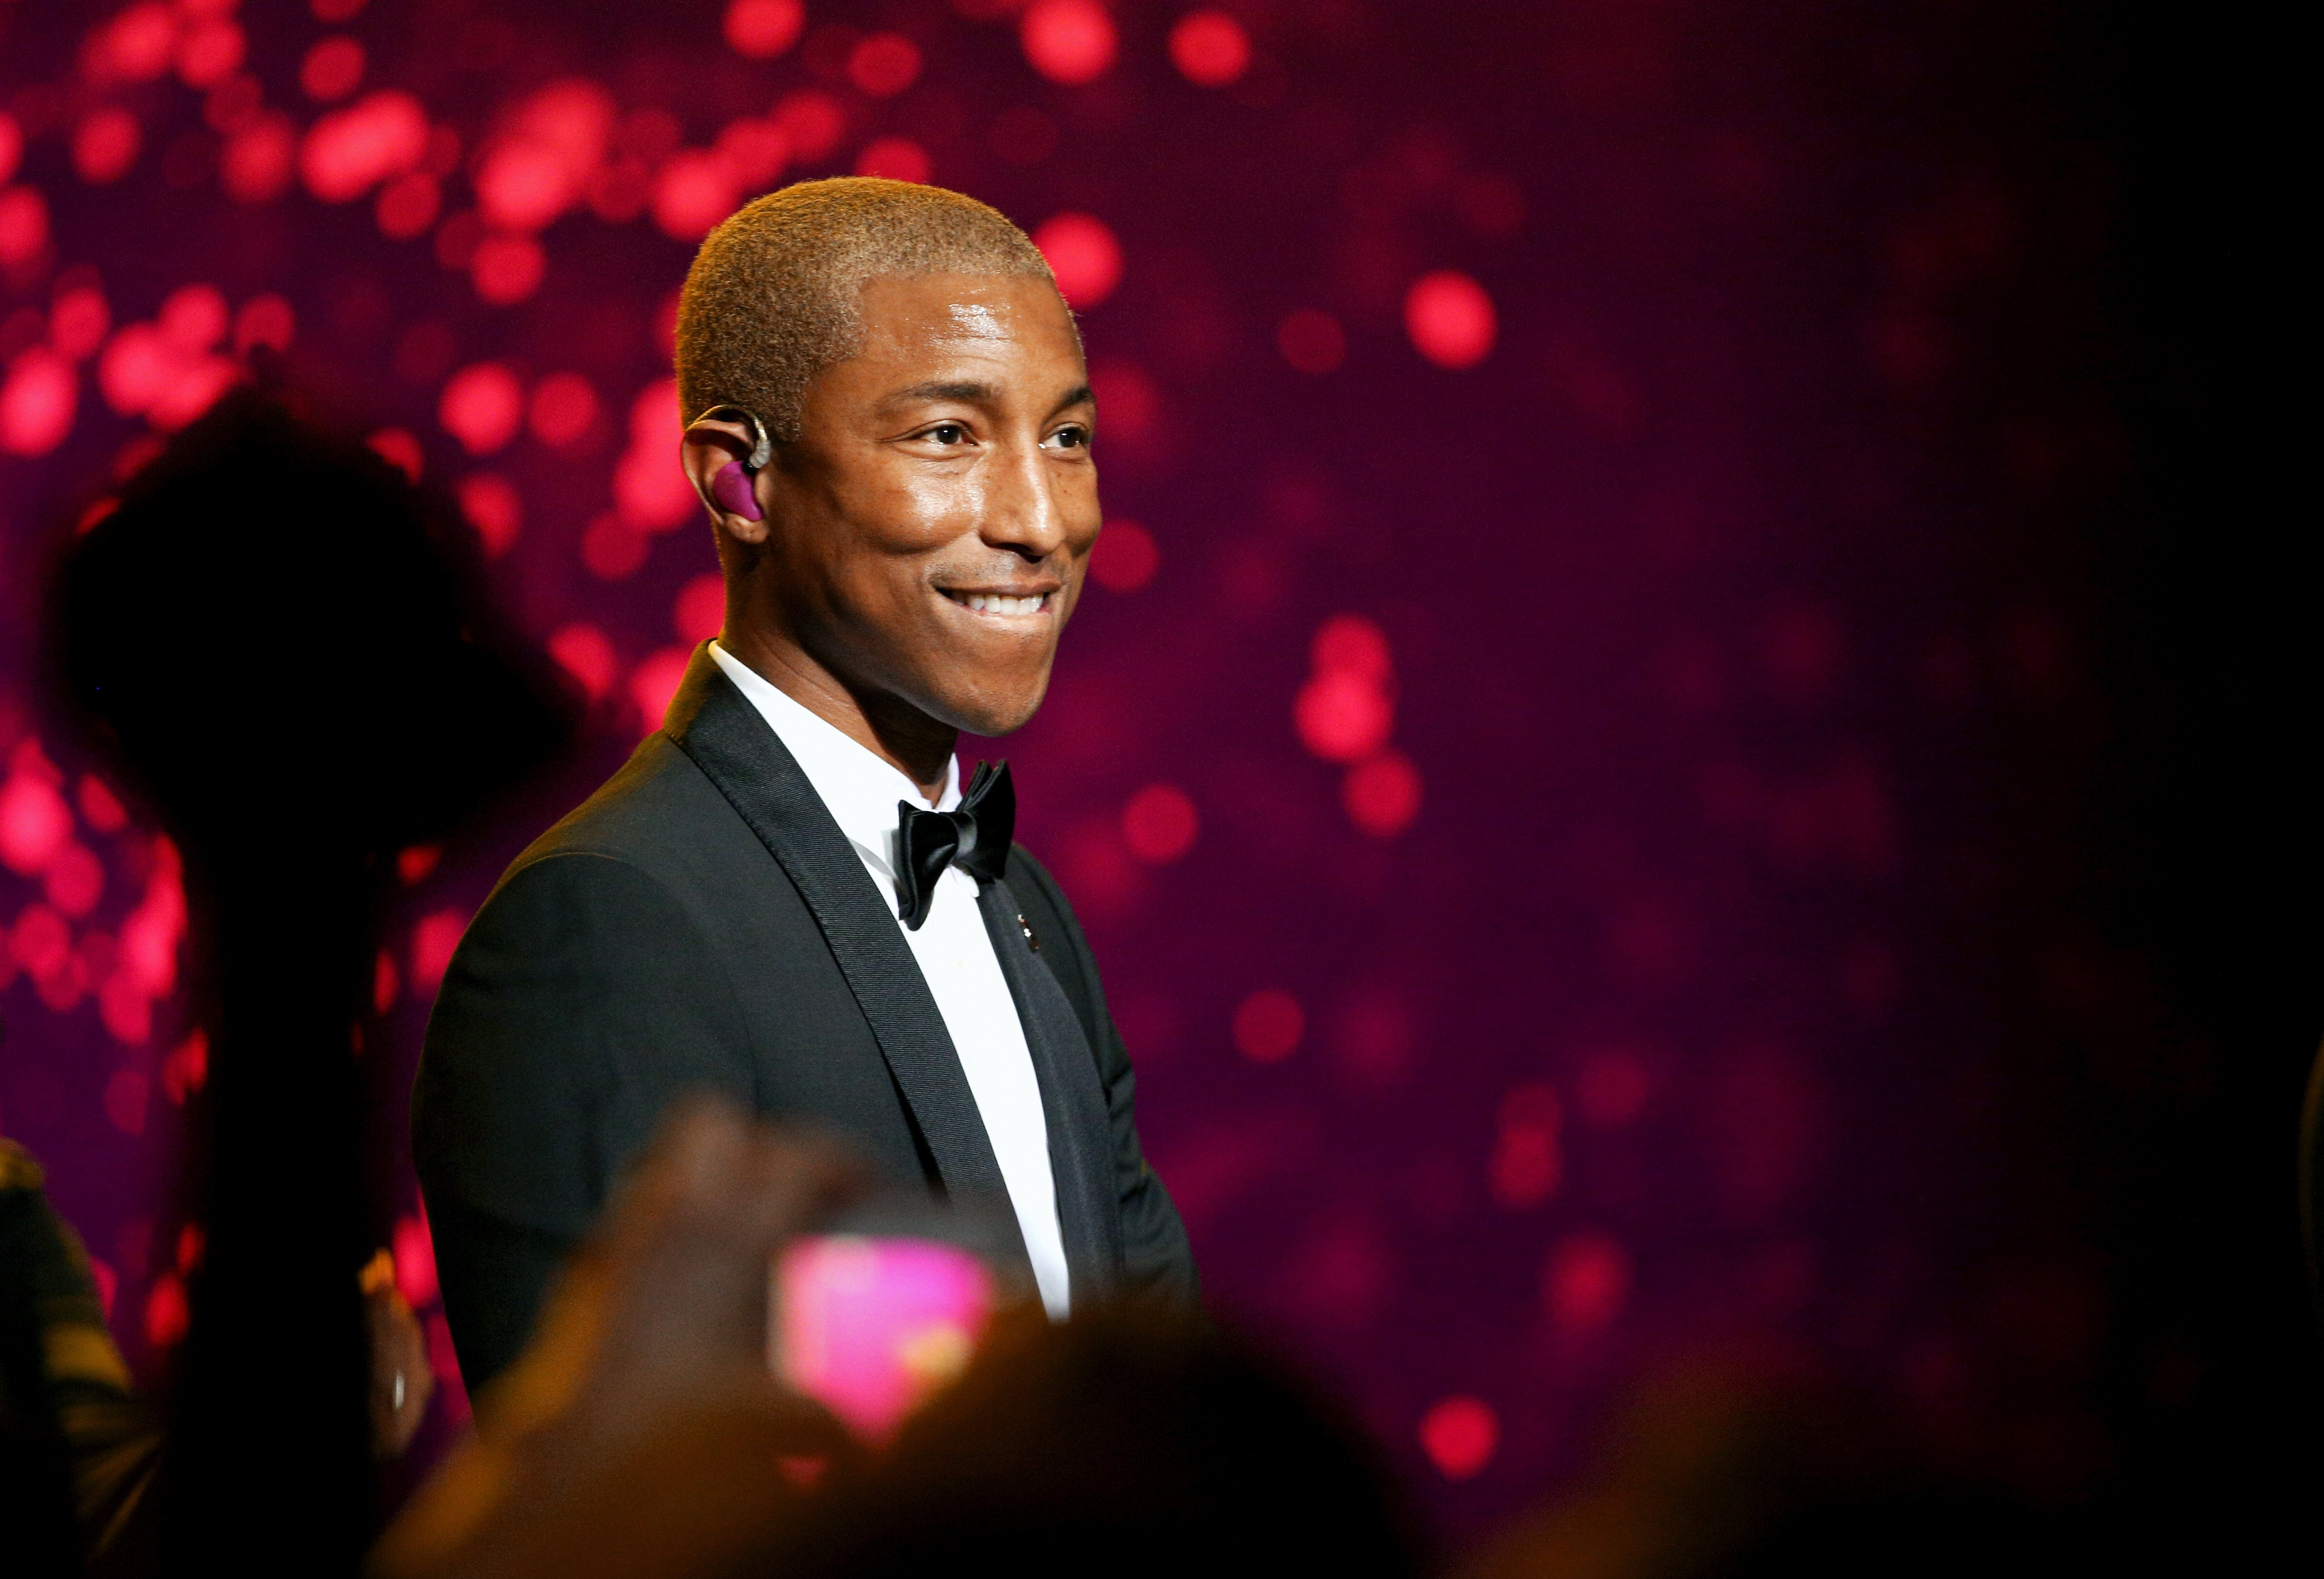 Pharrell Williams at the 7th Biennial UNICEF Ball on April 14, 2018 in Beverly Hills, California.|Source: Getty Images